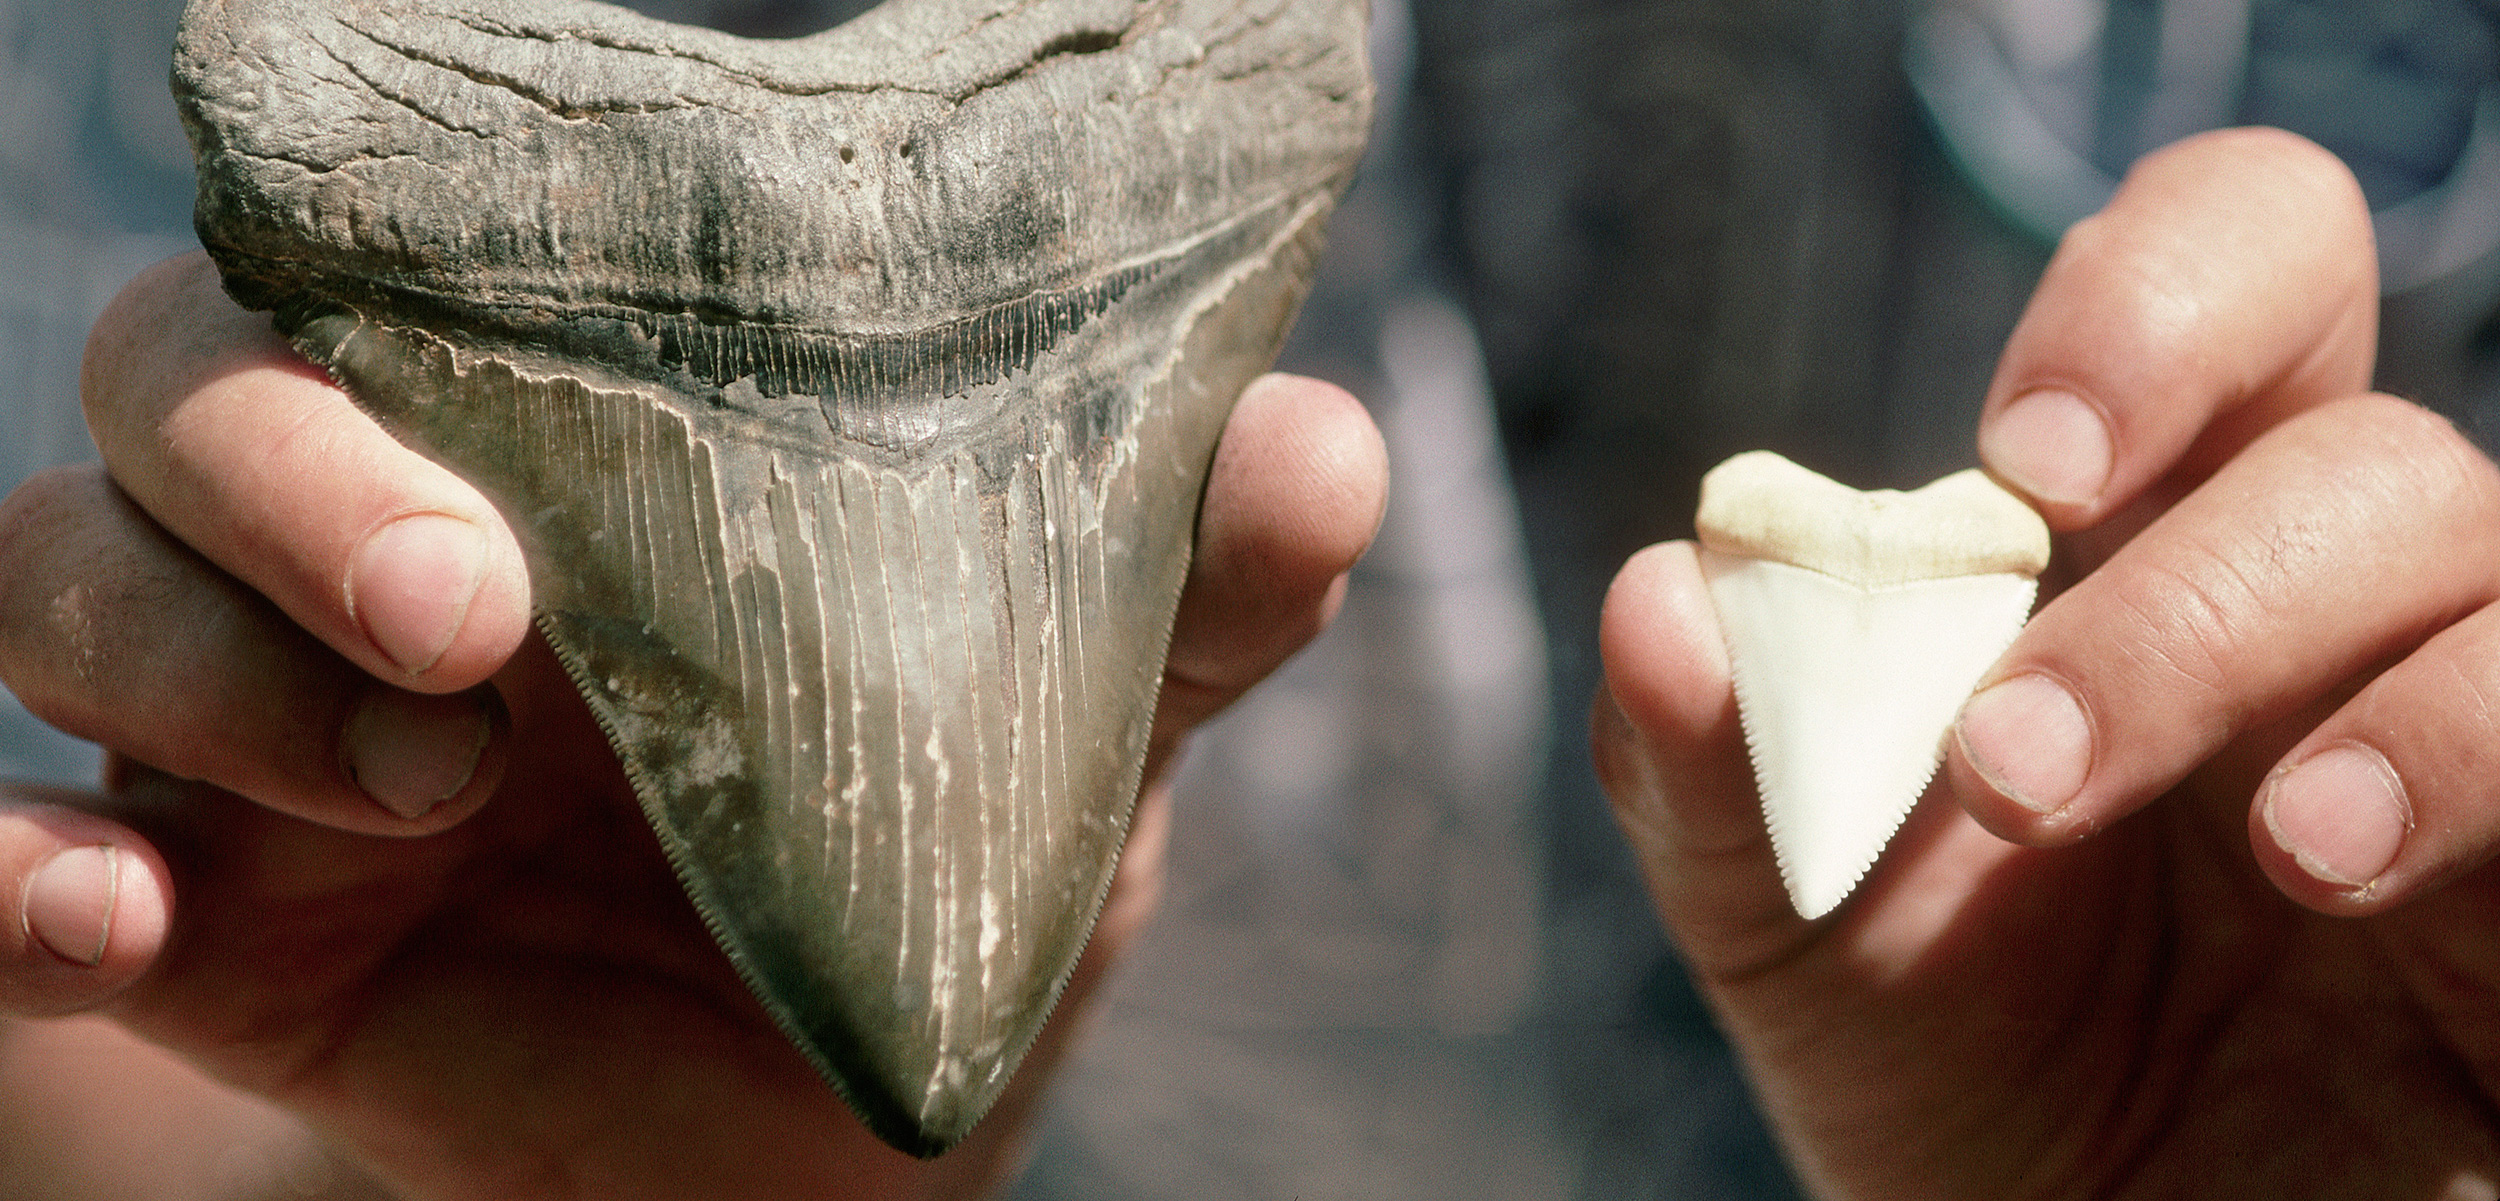 Megalodon teeth have been washing up on the shores of North Carolina. Here a megalodon tooth is held next to one from a great white shark. Photo by Jeffrey L. Rotman/Corbis